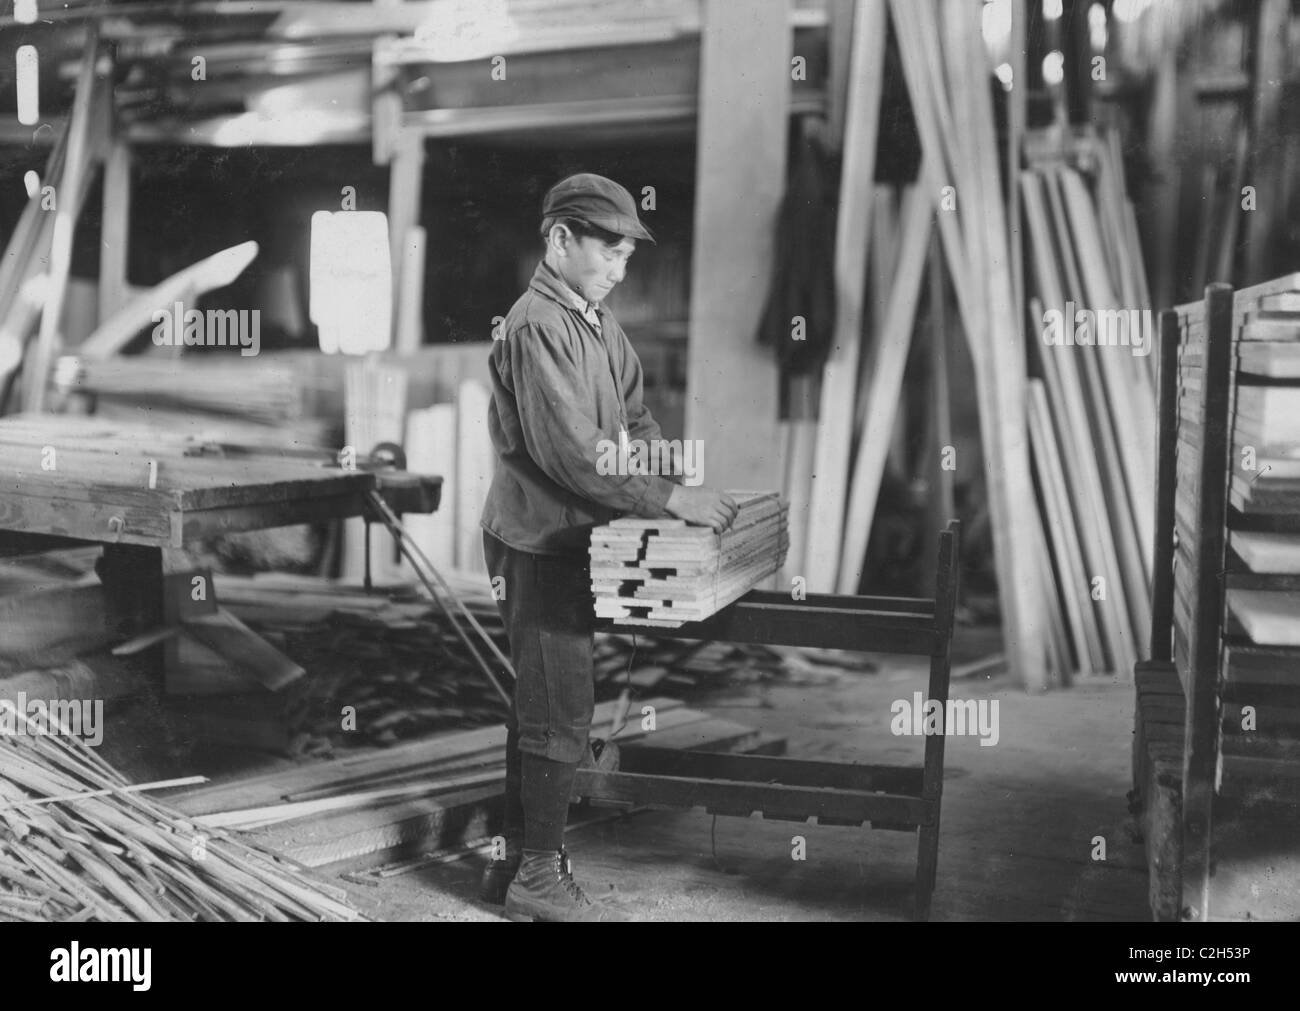 Boy probably about 13 years old, tying strips which he has taken away from the planer - Stock Image